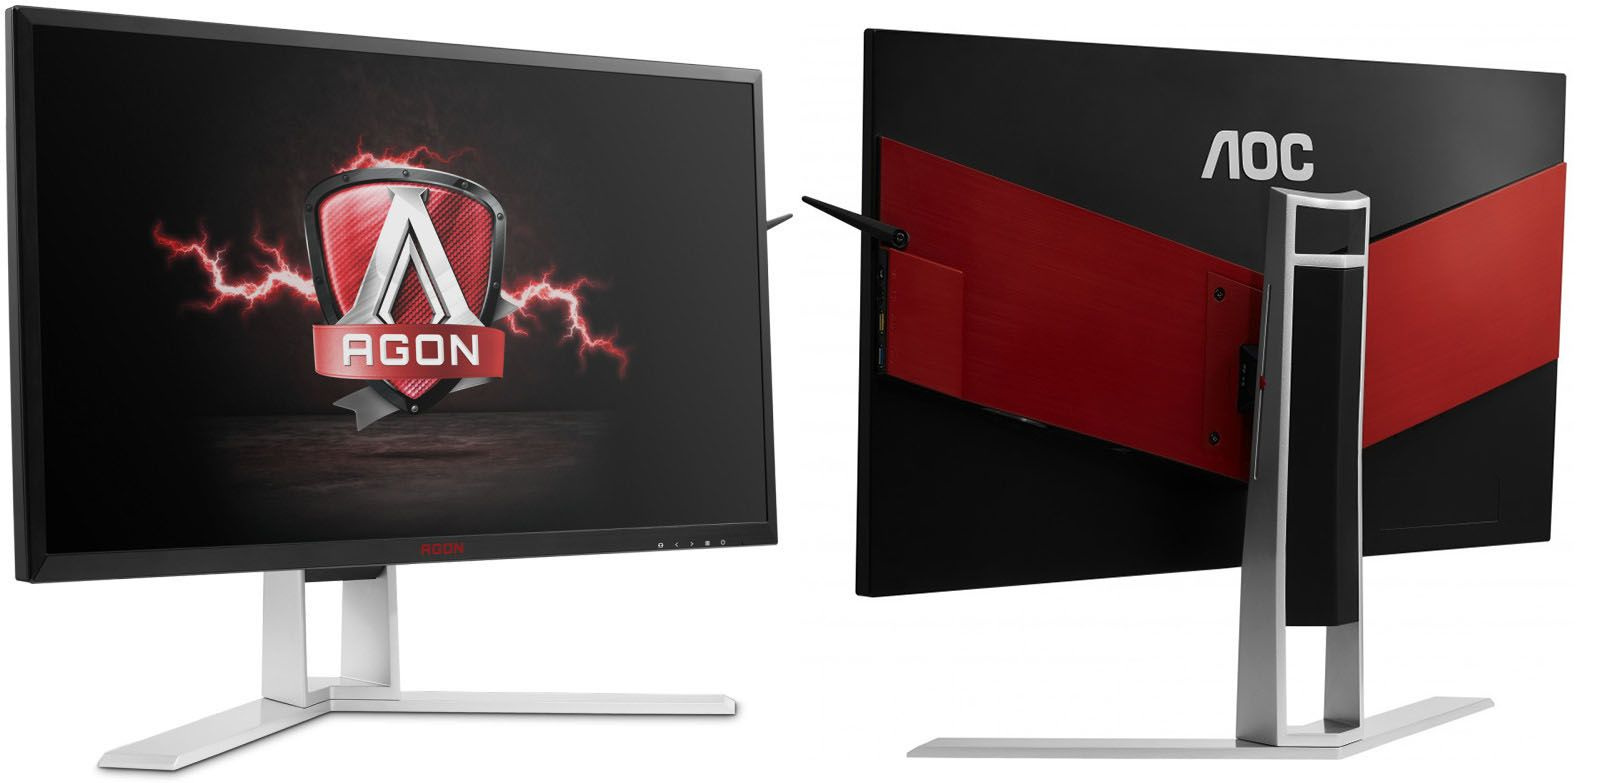 AOC unveiled the AG241 series under AGON Gaming Monitors